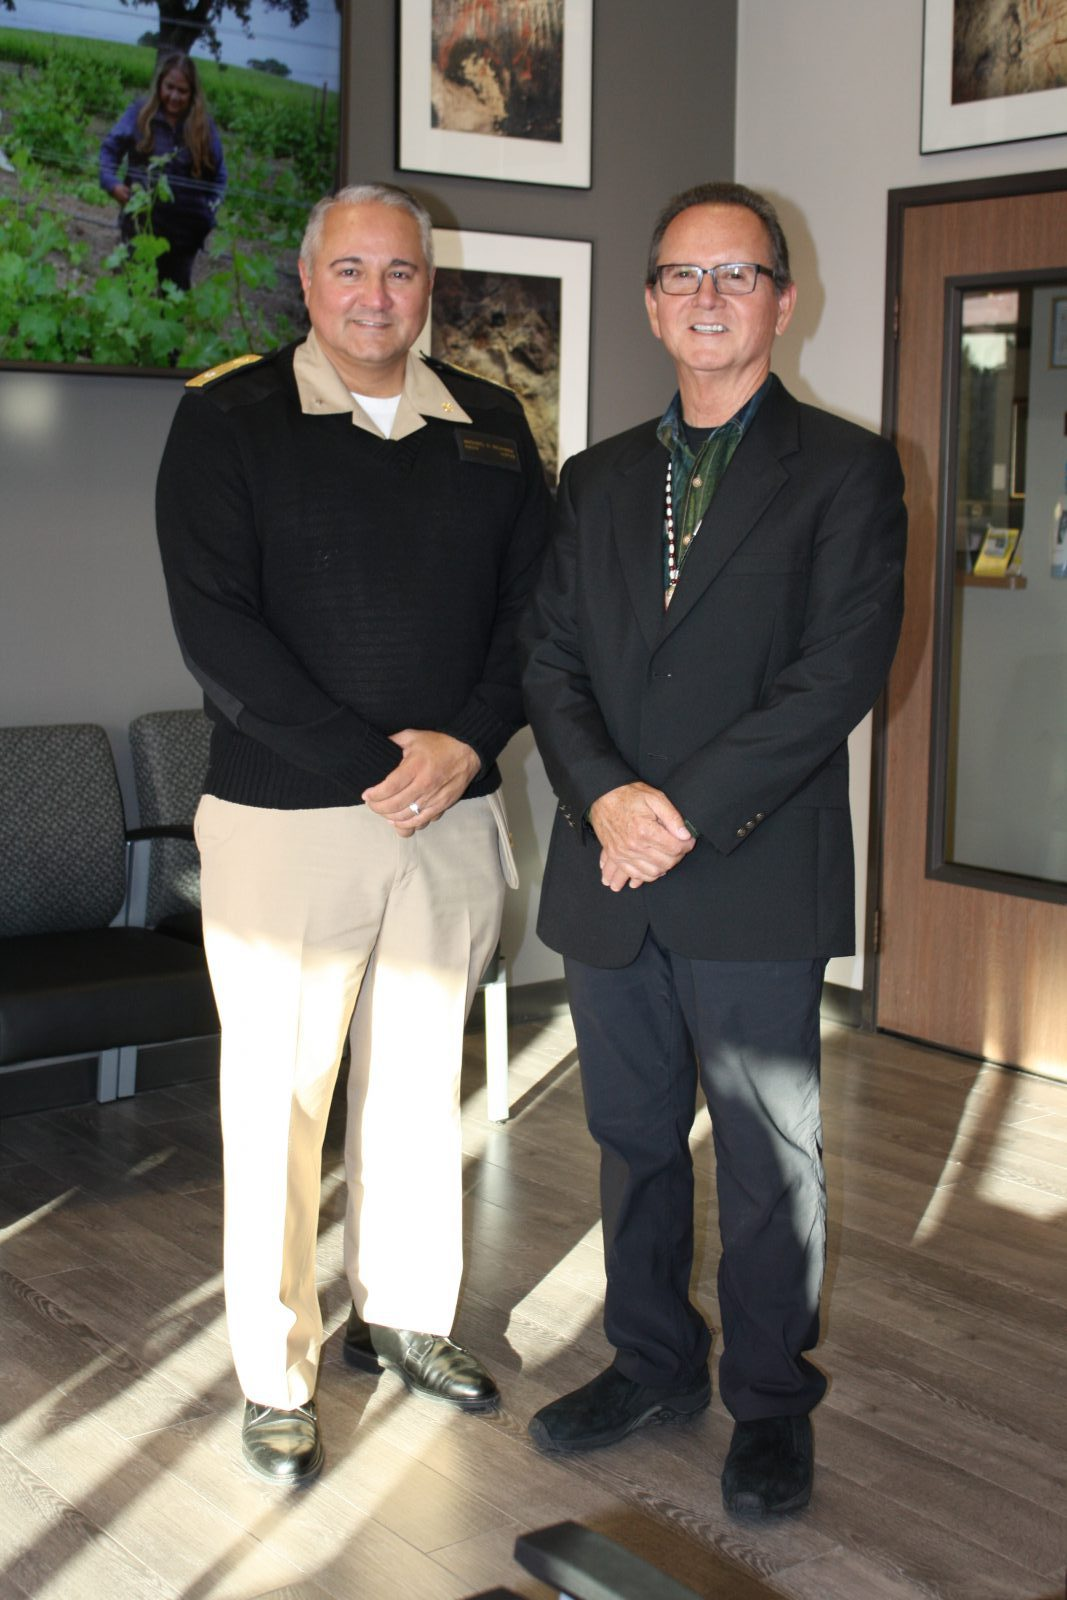 Welcomed VIP guest, Rear Adm. Michael D. Weahkee, Principal Deputy Director of the Indian Health Services (IHS)